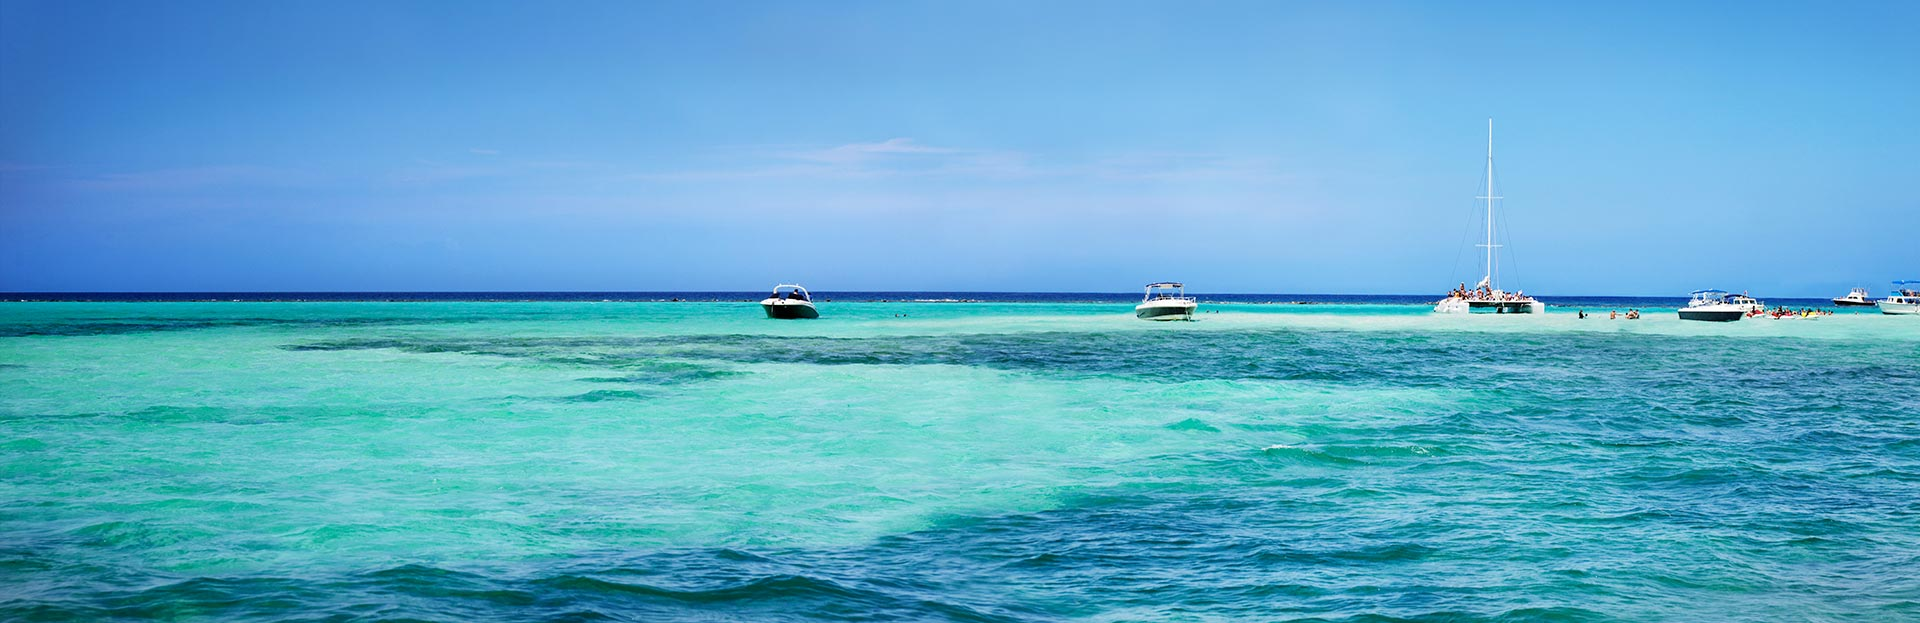 Grand Cayman Boats